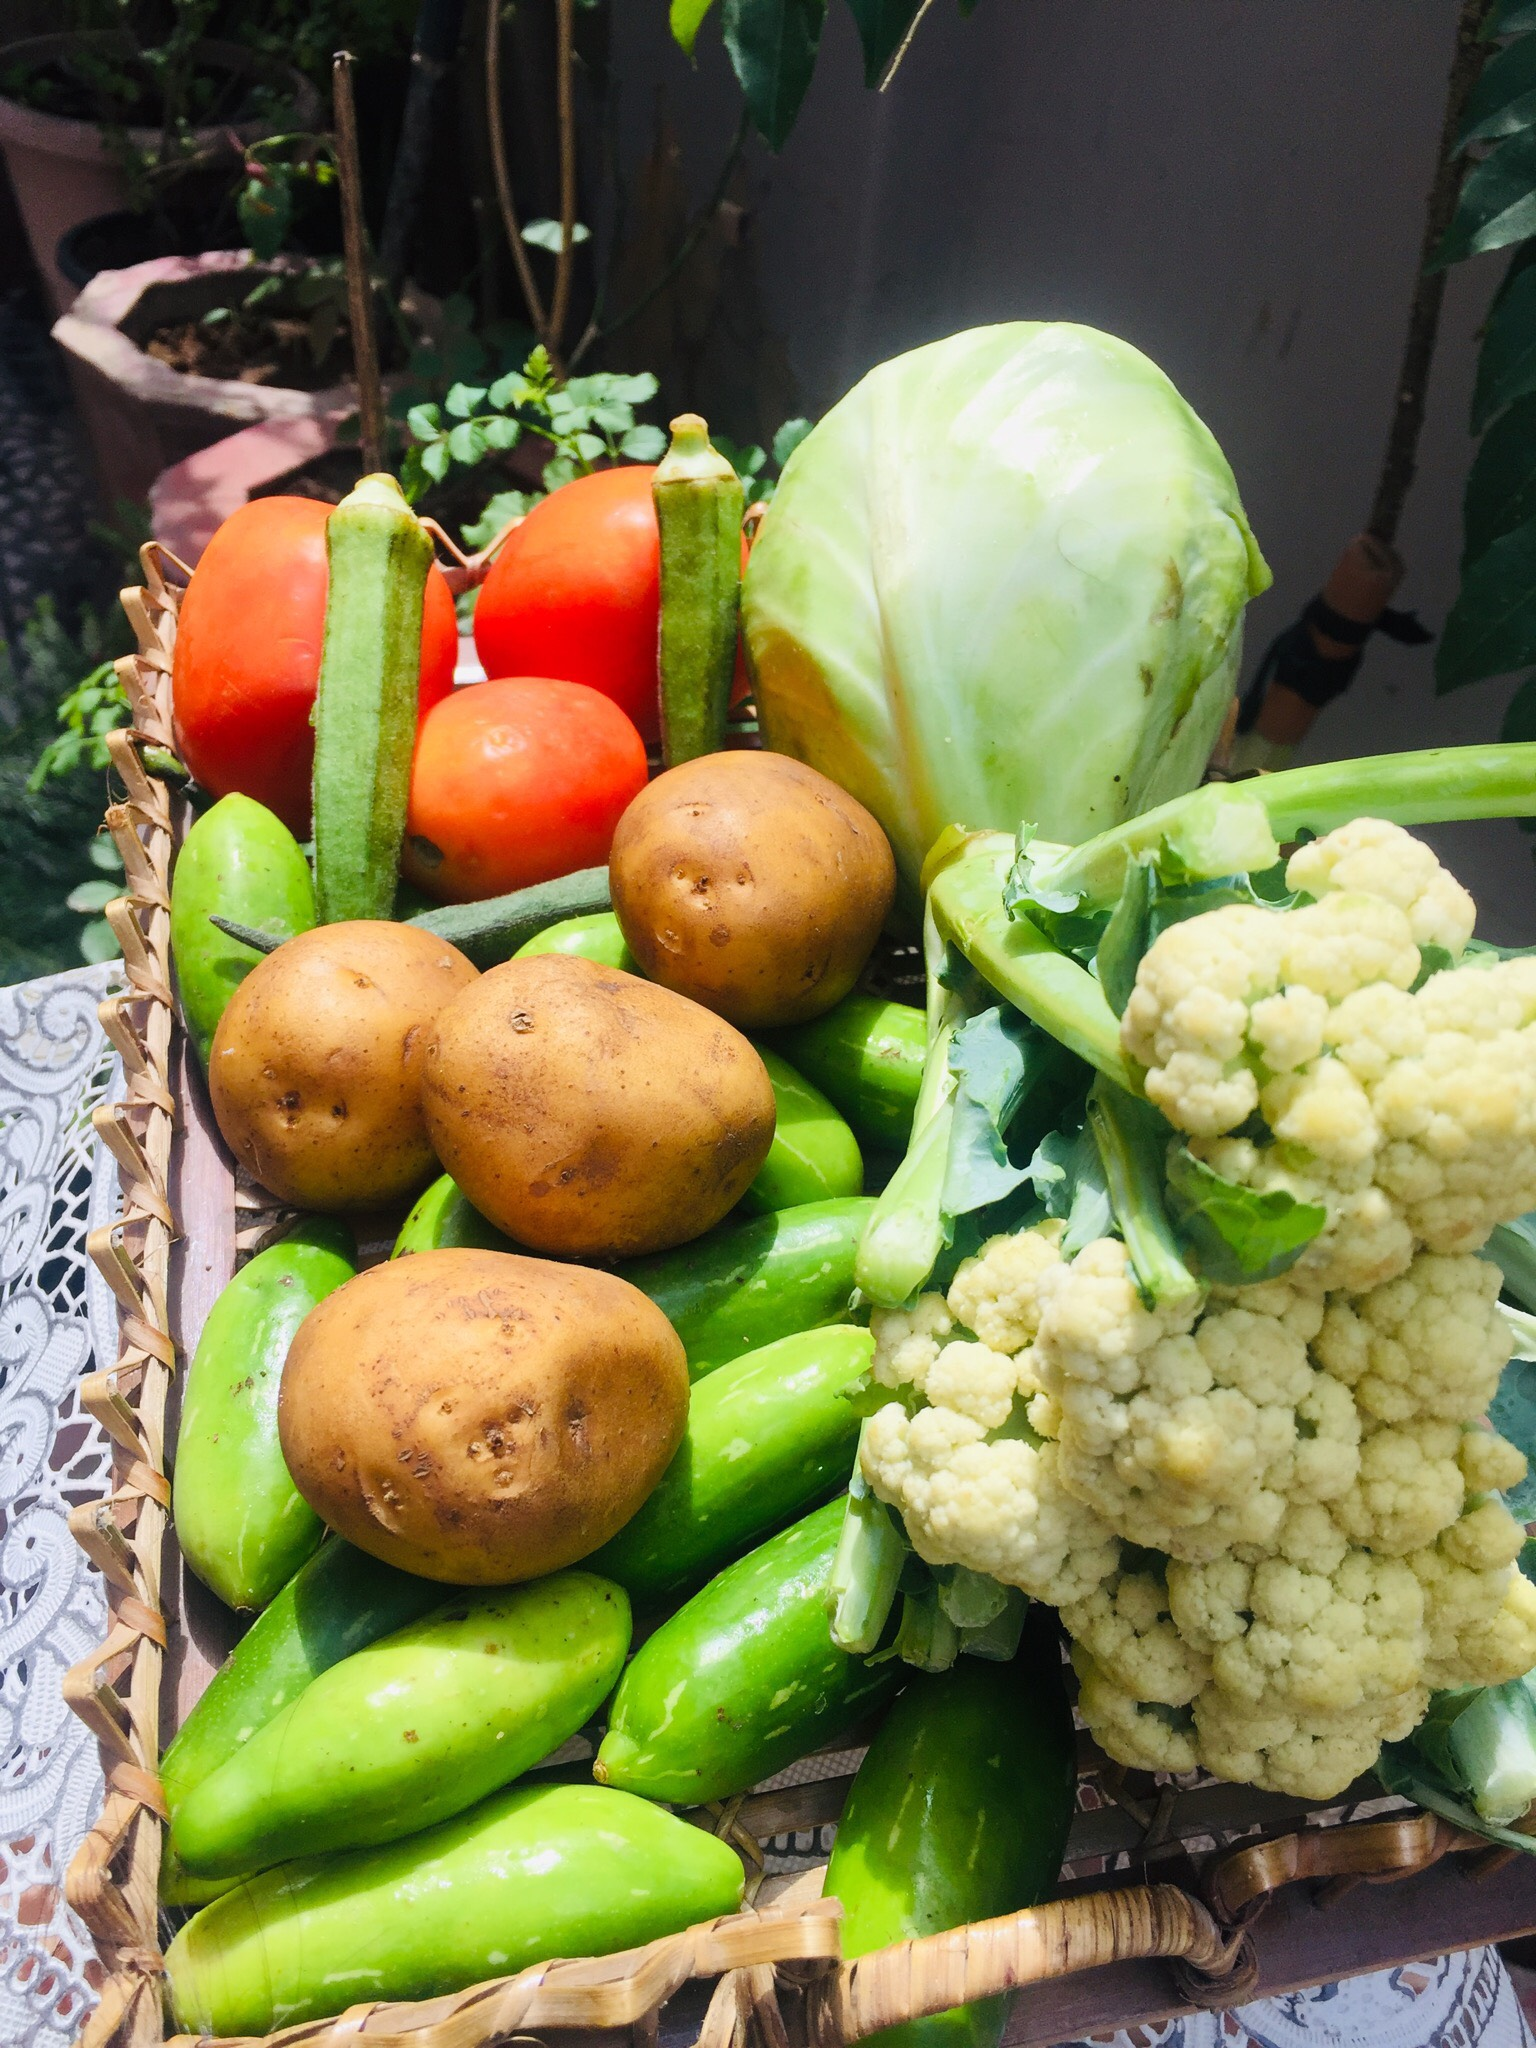 How to select and buy these 10 vegetables fresh?